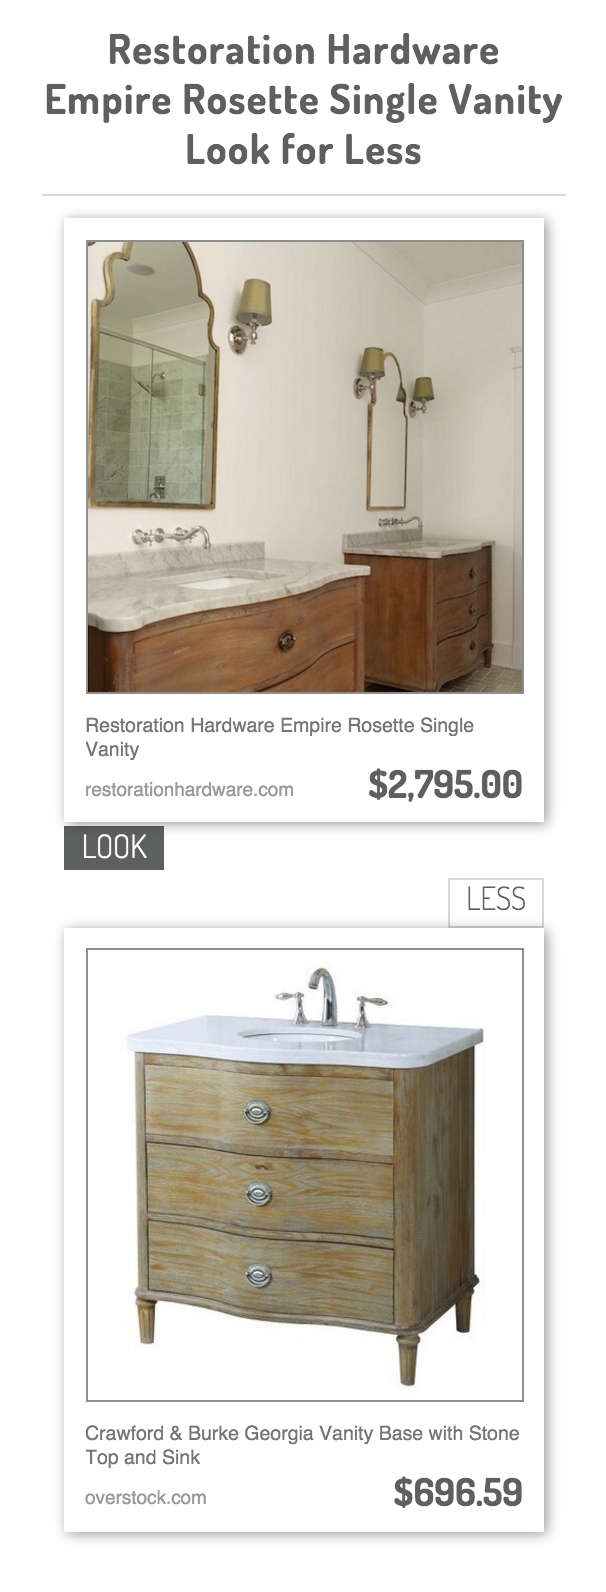 Restoration hardware empire rosette single vanity vs - Crawford and burke bathroom vanity ...